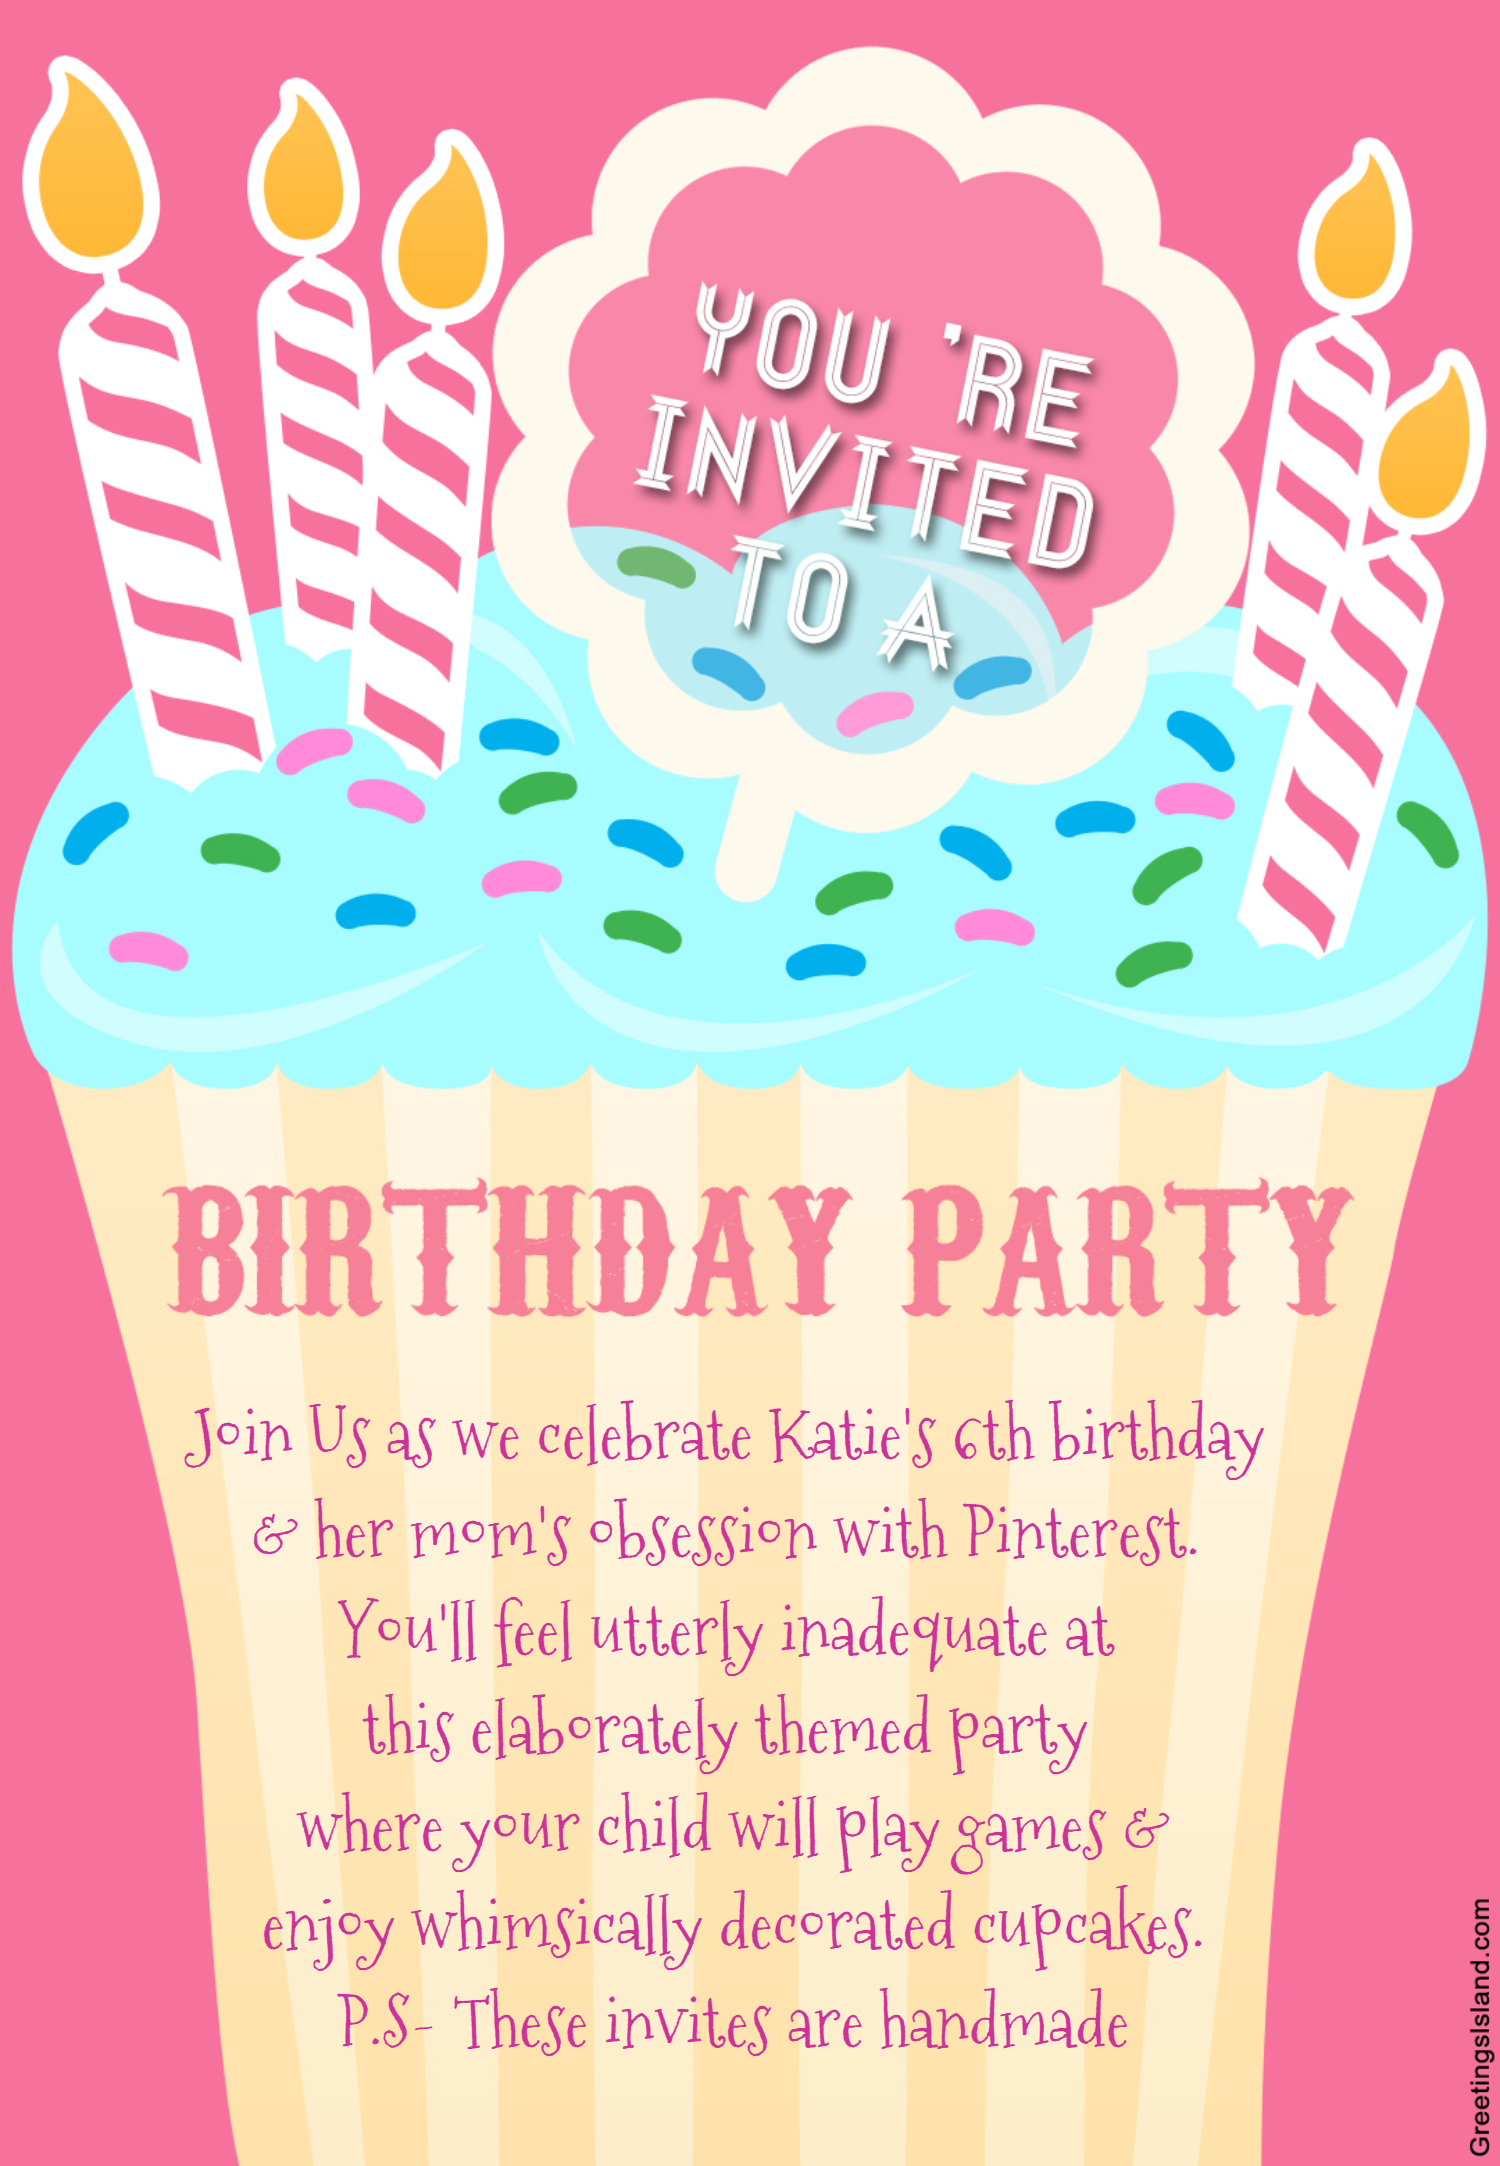 birthday invitation in german ; best-solutions-of-invitation-for-birthday-party-of-son-for-honest-birthday-party-invitations-of-invitation-for-birthday-party-of-son